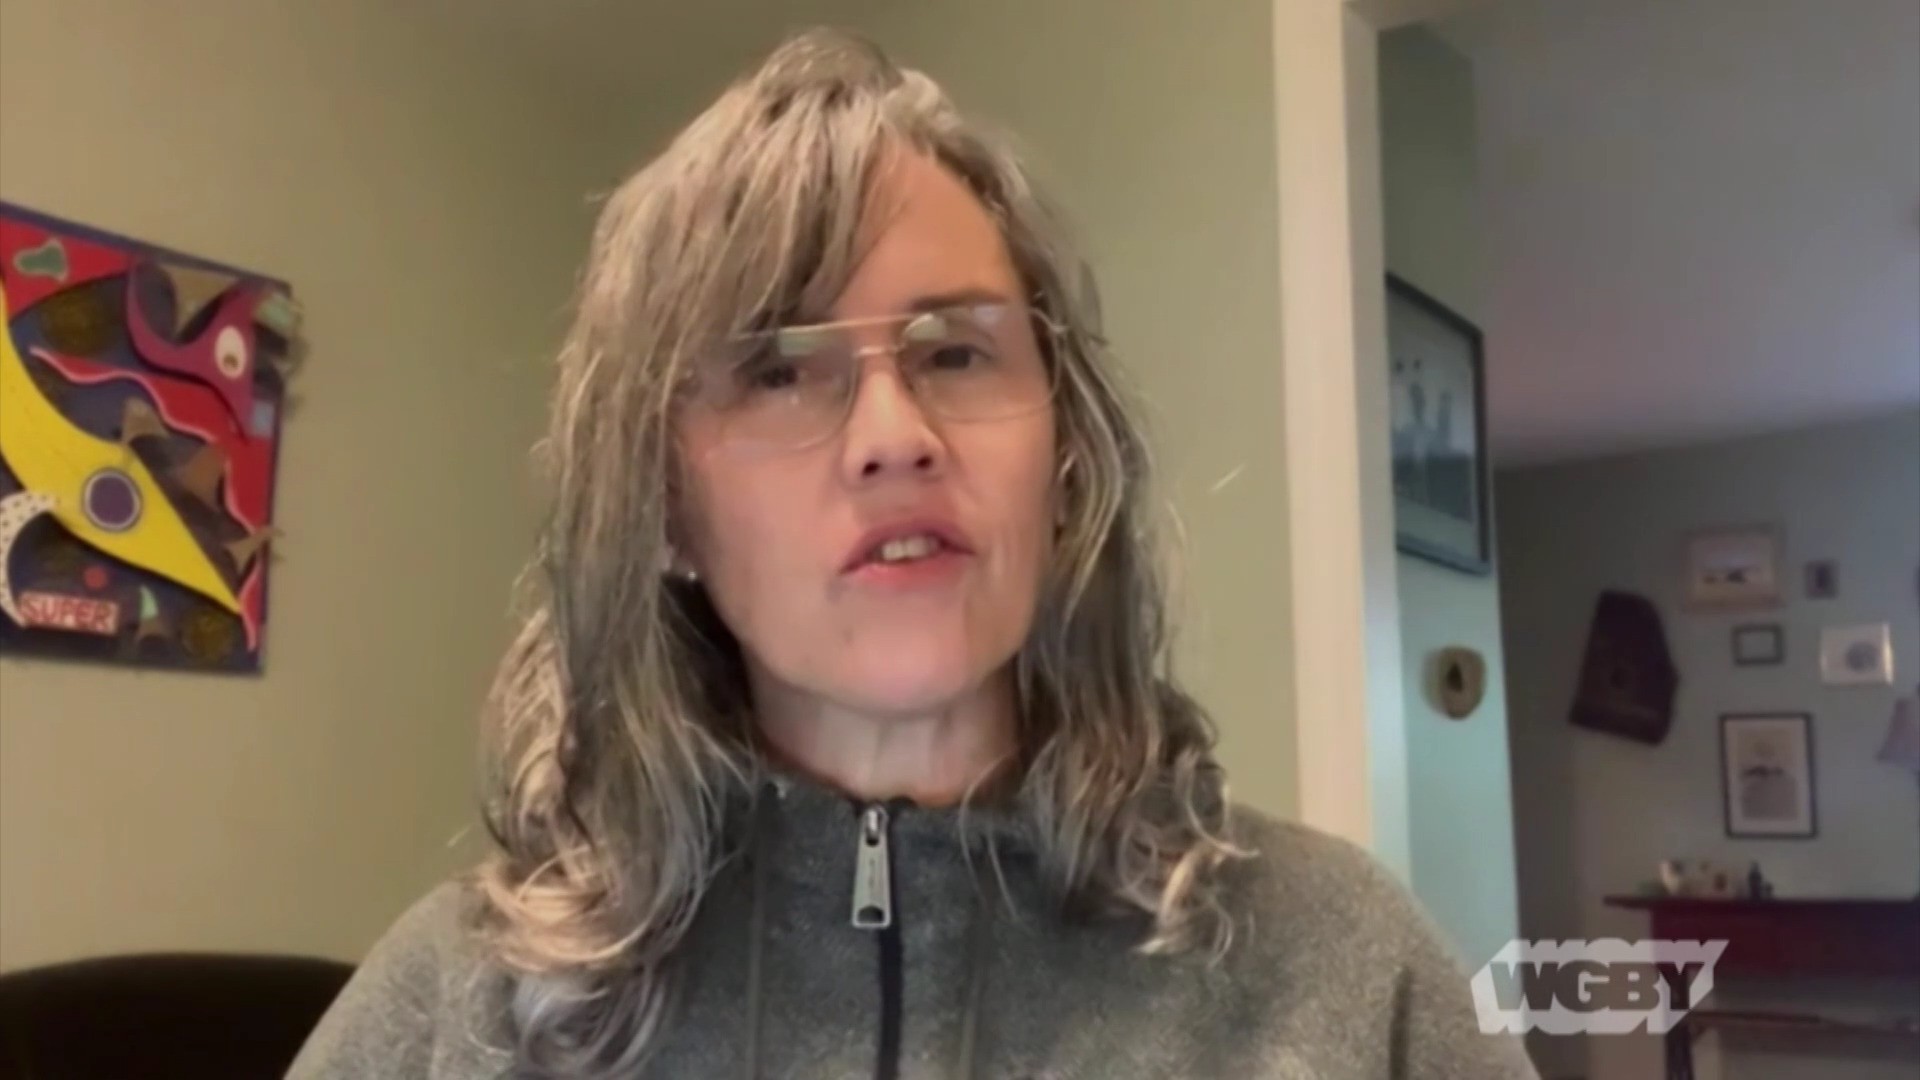 Mass. Reopening Advisor board member & Mayor Nicole LaChapelle talks about how city leaders and small businesses in Easthampton are preparing to reopen.